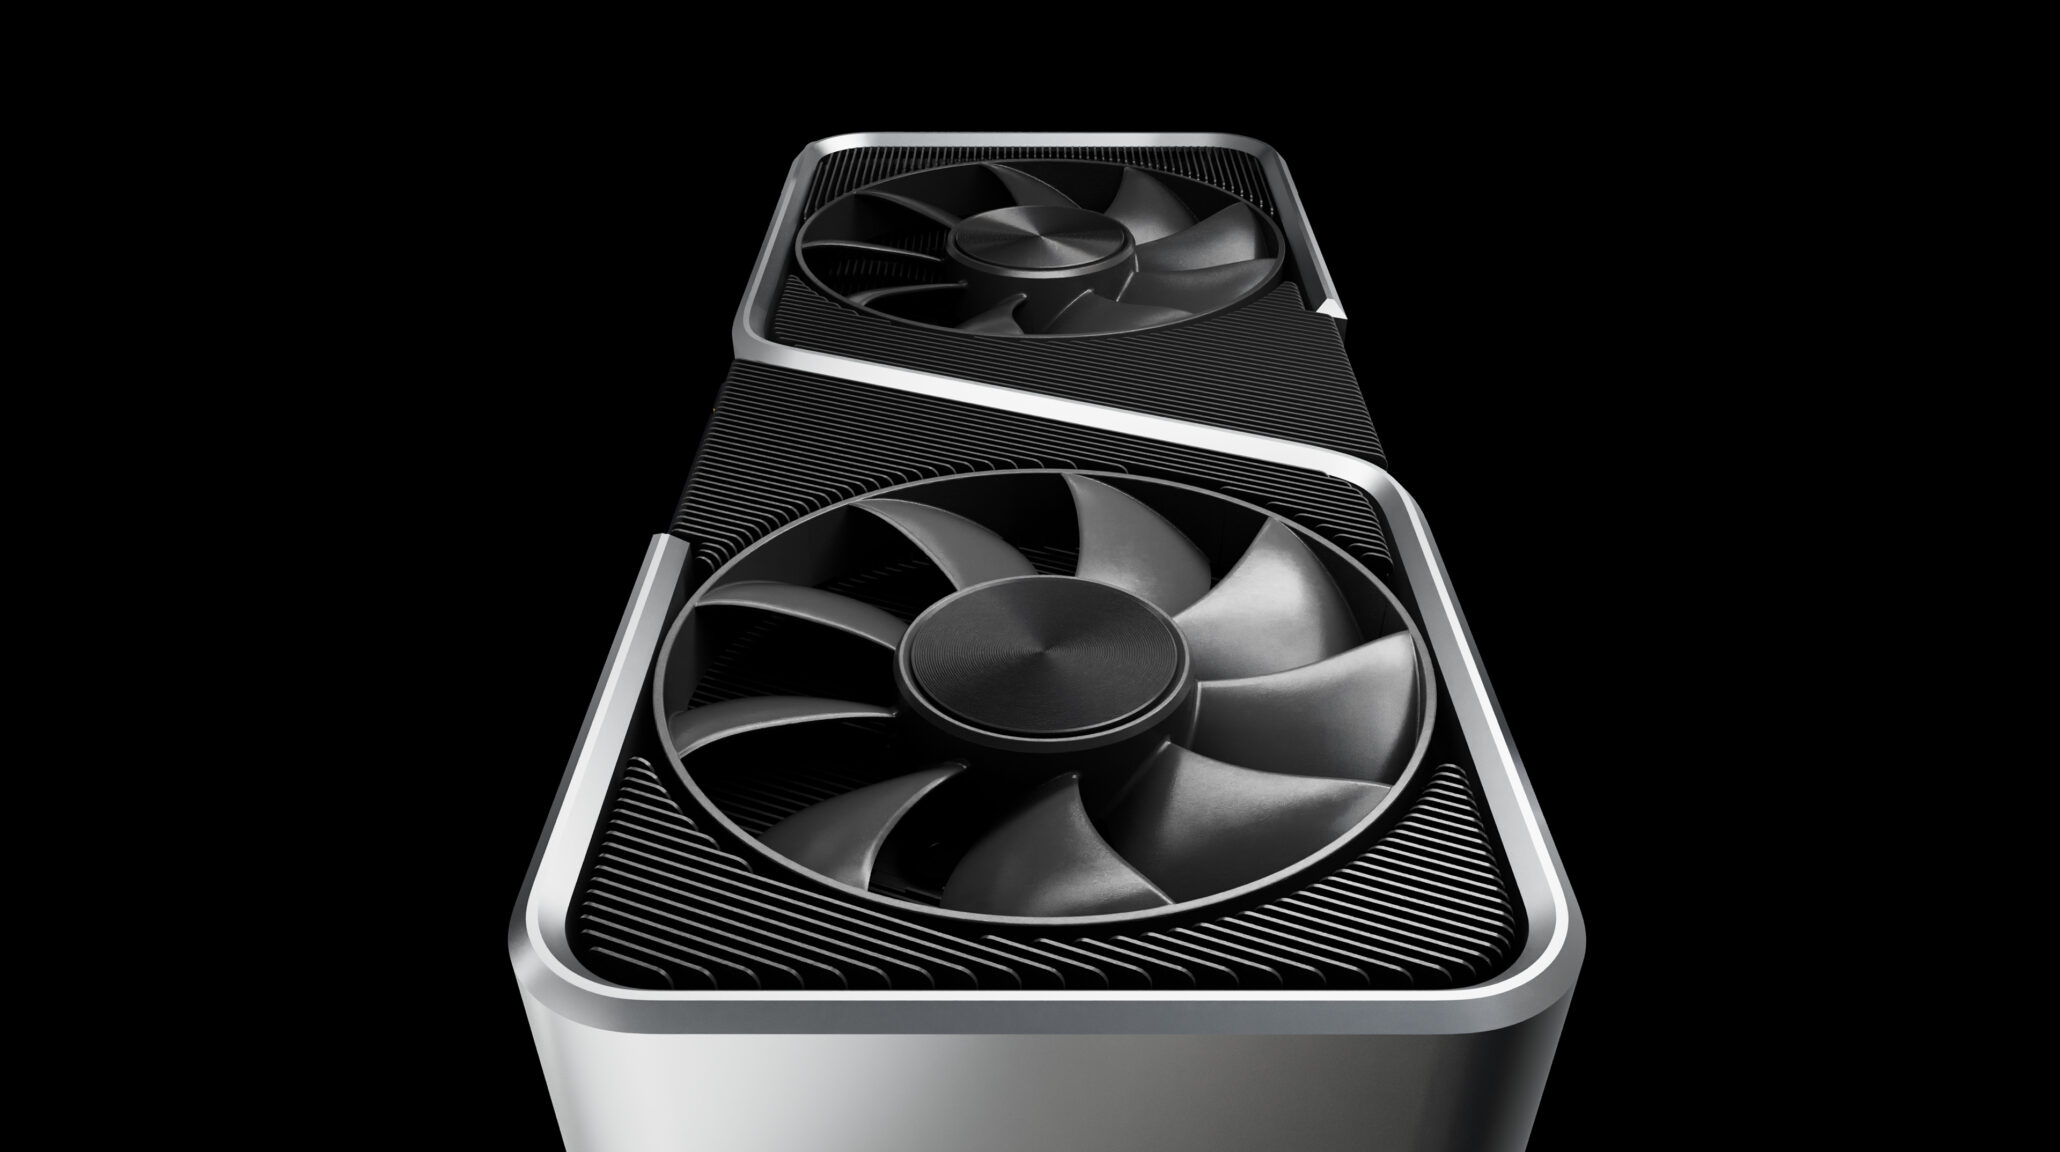 NVIDIA Confirms Mining Crippled GeForce RTX 3060 Graphics Cards Shipping in Mid-May, Will Reintroduce Cryptocurrency Hash Rate Limiter